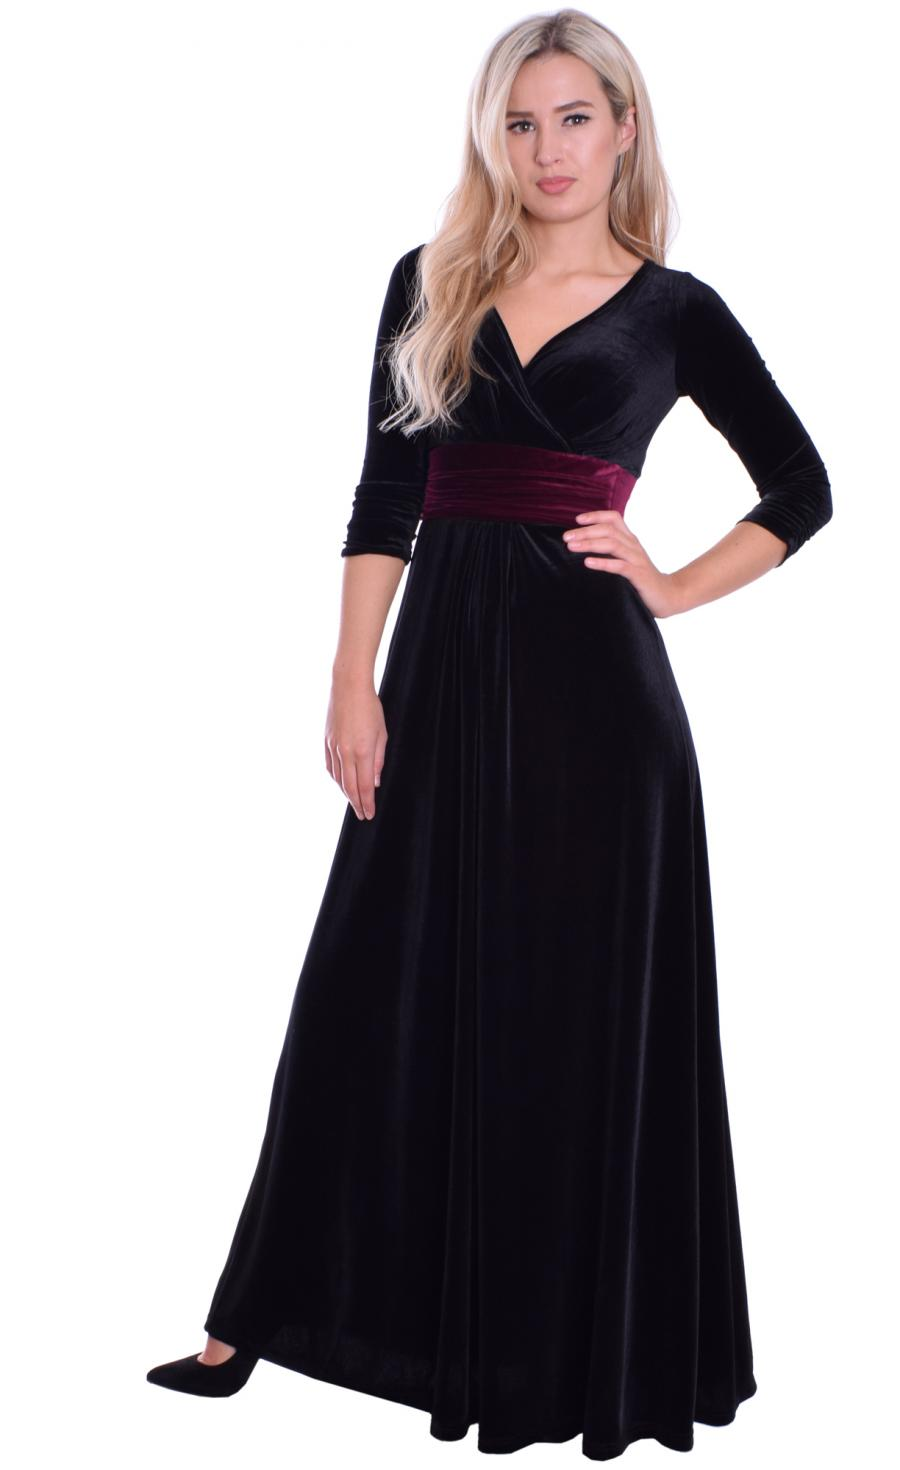 MontyQ Fashion - Image for Long Evening Dress Black Velvet Burgundy